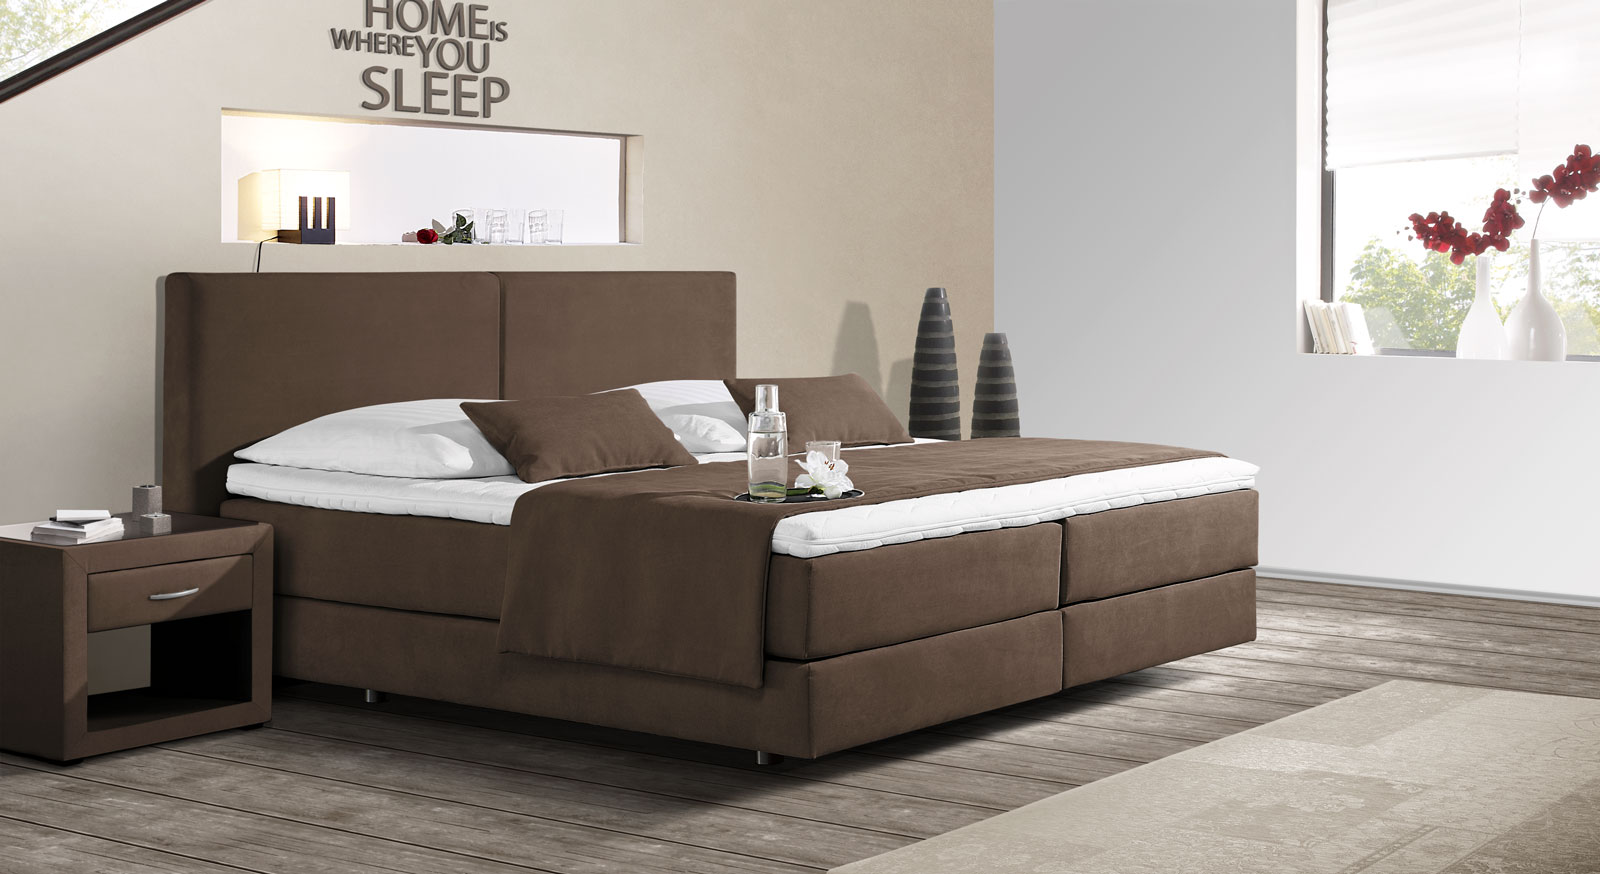 Boxspringbett mit schwebeoptik z b in anthrazit carrara for Boxspringbett schlafzimmer